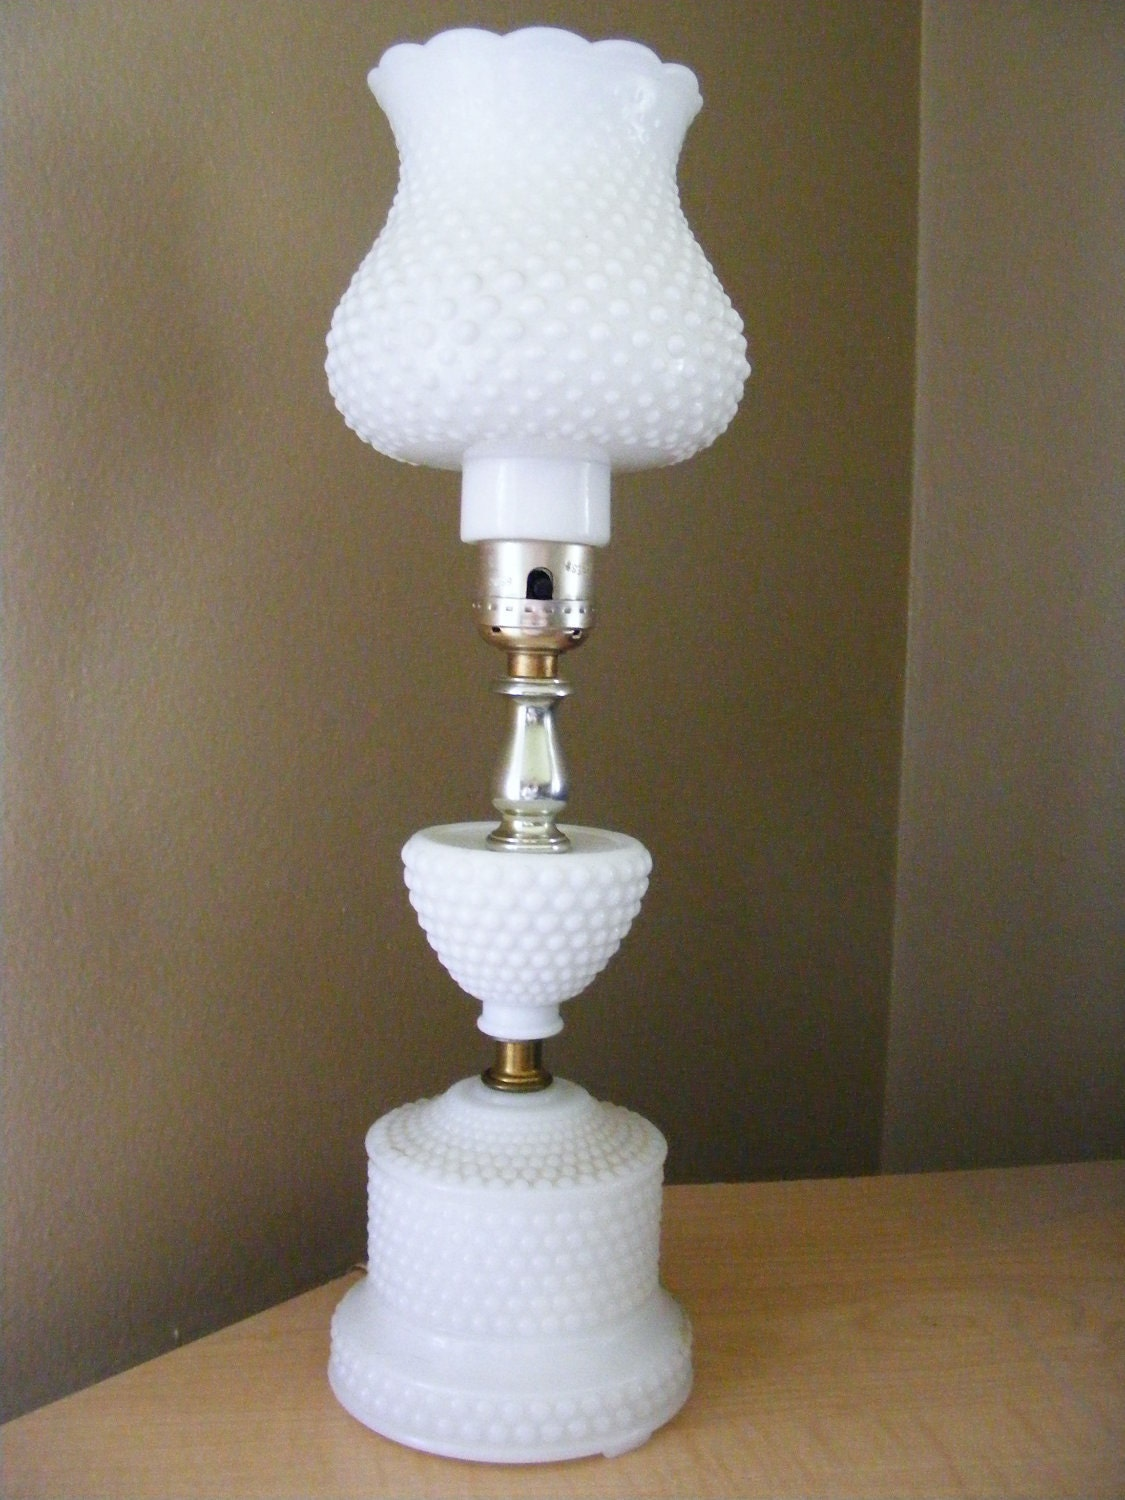 Fenton Milk Glass Lamp By Themammabear On Etsy